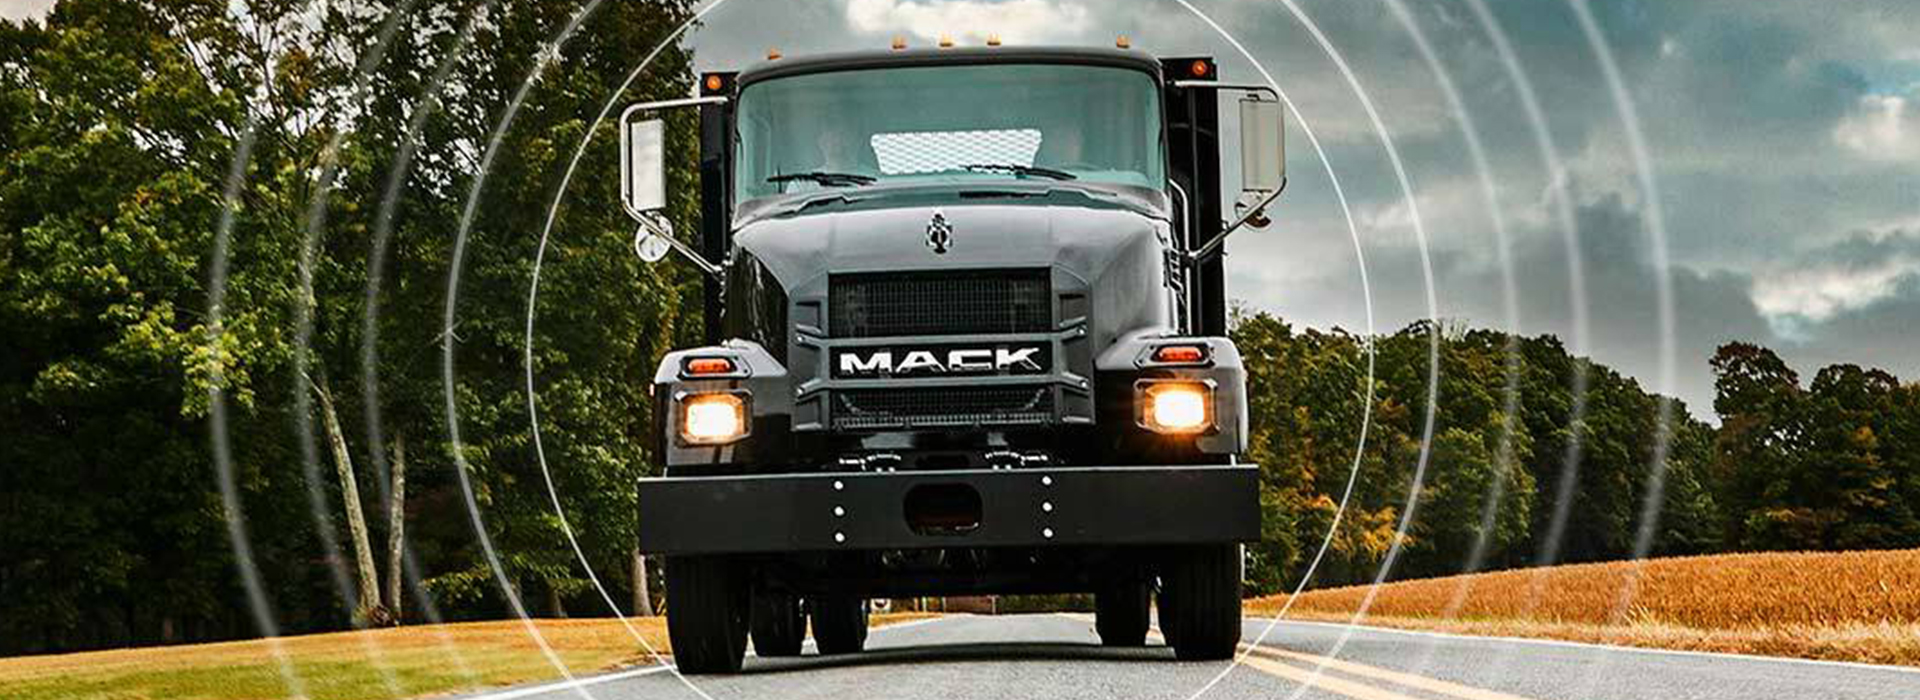 Mack MD Series 2020